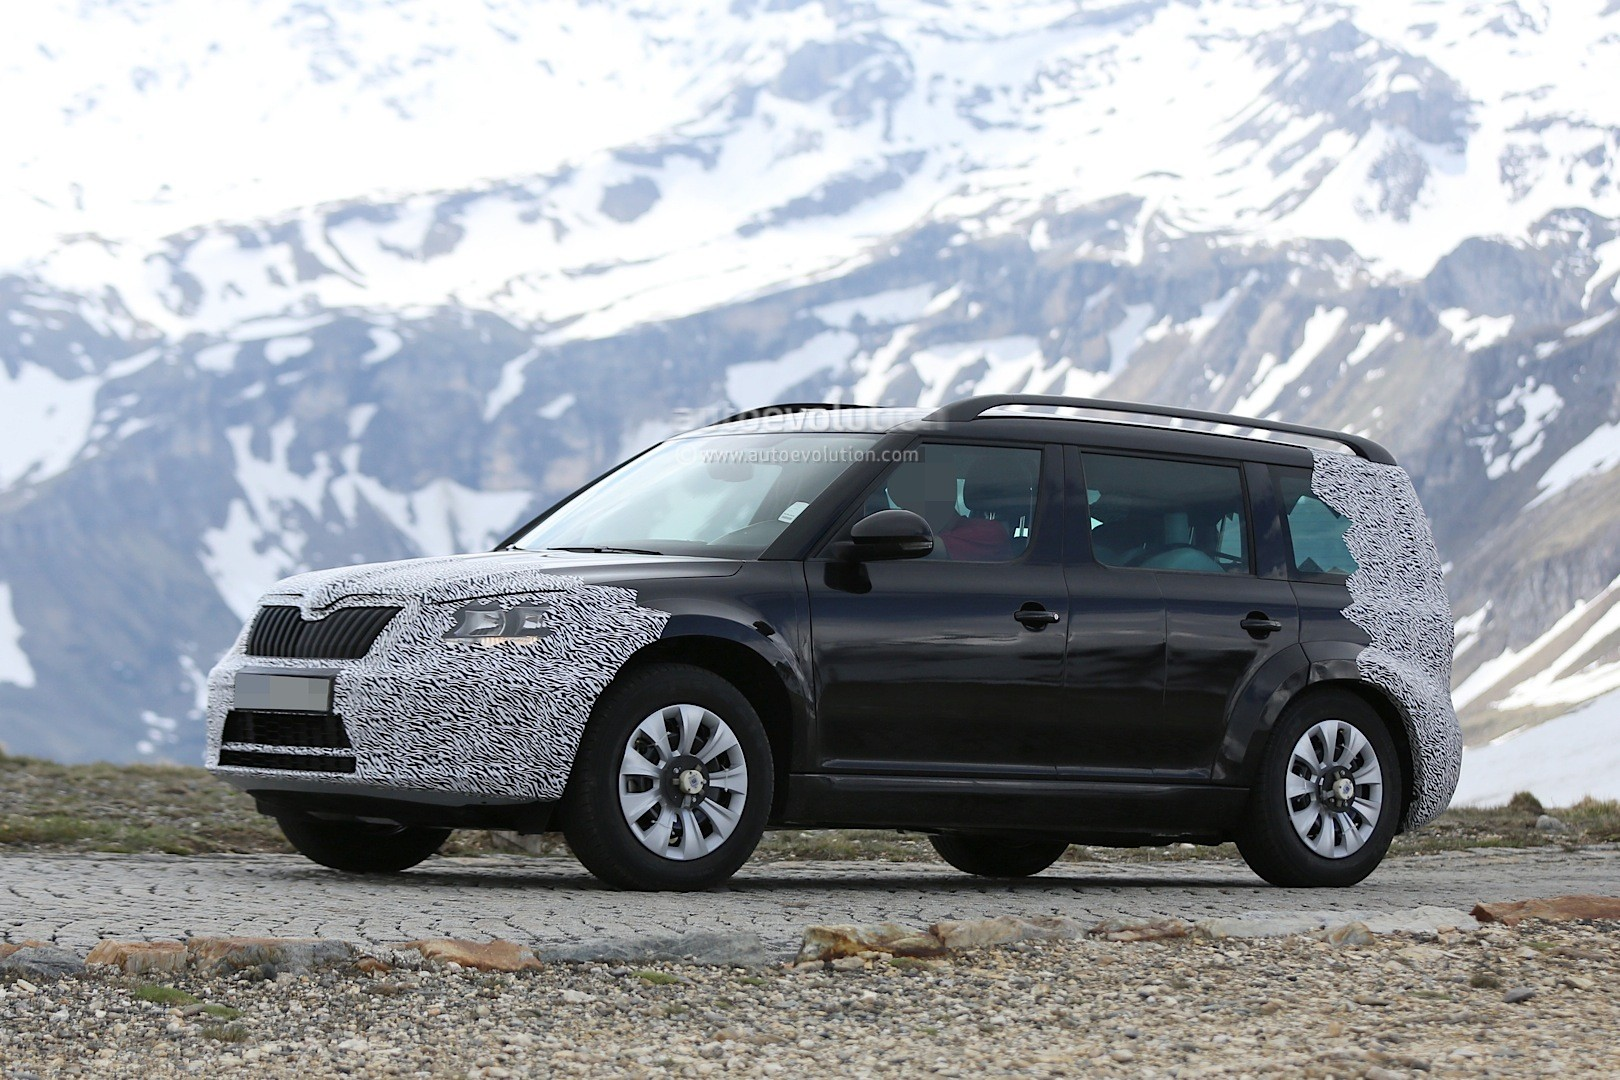 spyshots 2016 skoda snowman 7 seater testing in the alps. Black Bedroom Furniture Sets. Home Design Ideas